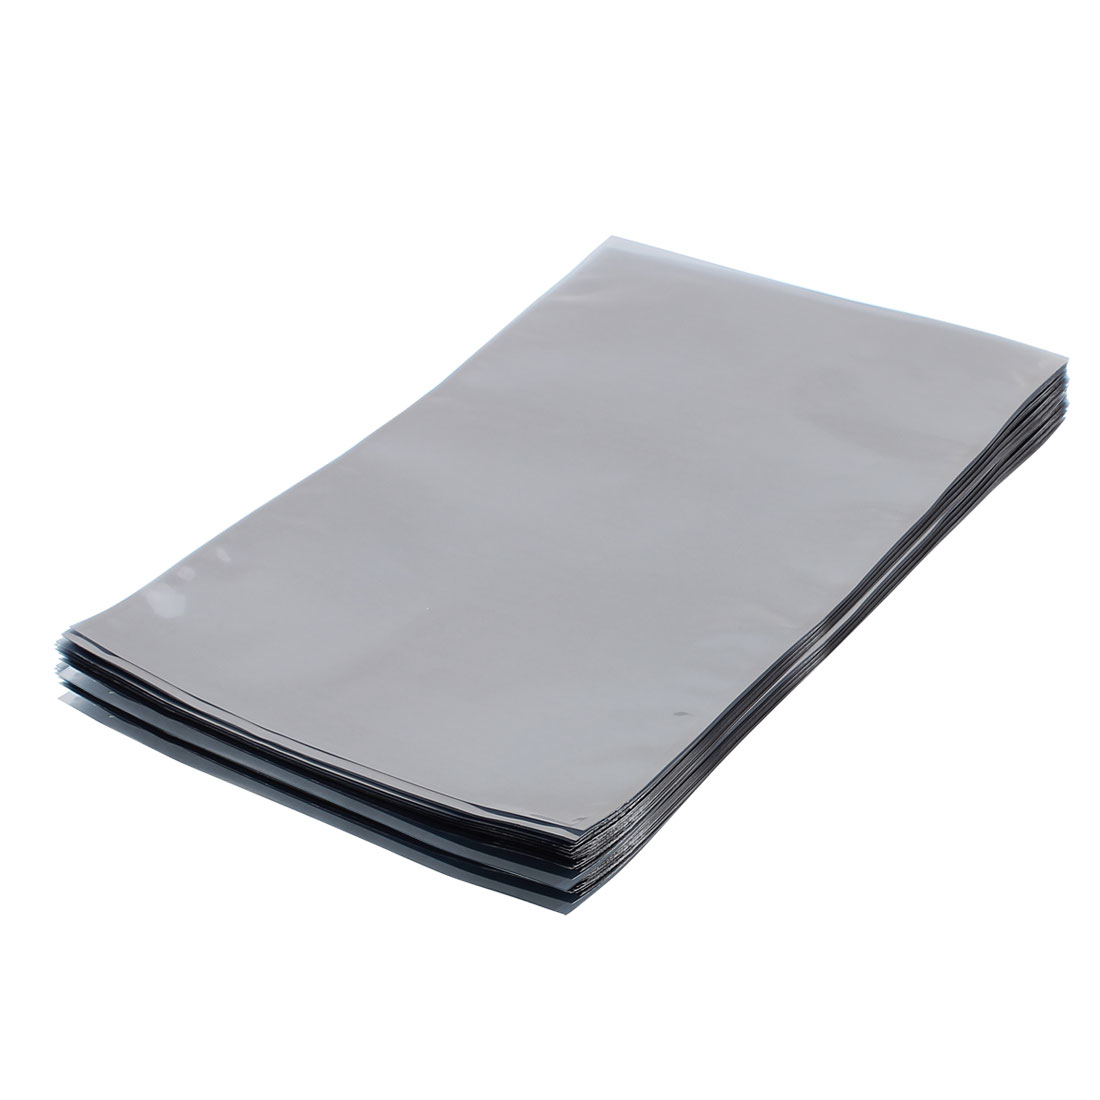 100 Pcs 230mm x 340mm Silver Tone Flat Open Top Anti Static Bag For Electronics